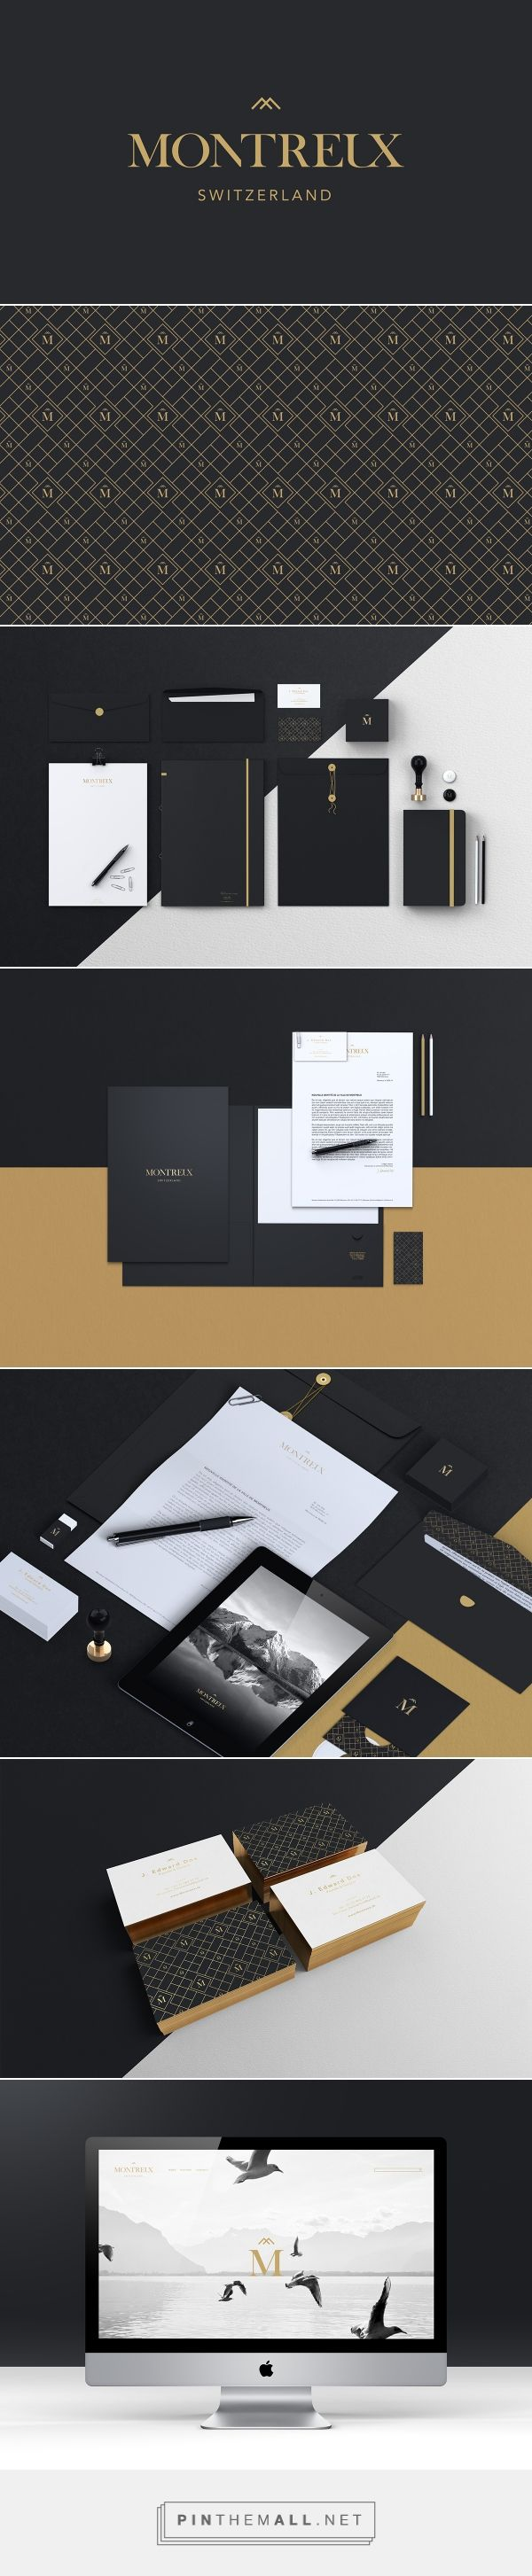 Montreux | Branding on Behance  | Fivestar Branding – Design and Branding Agency & Inspiration Gallery